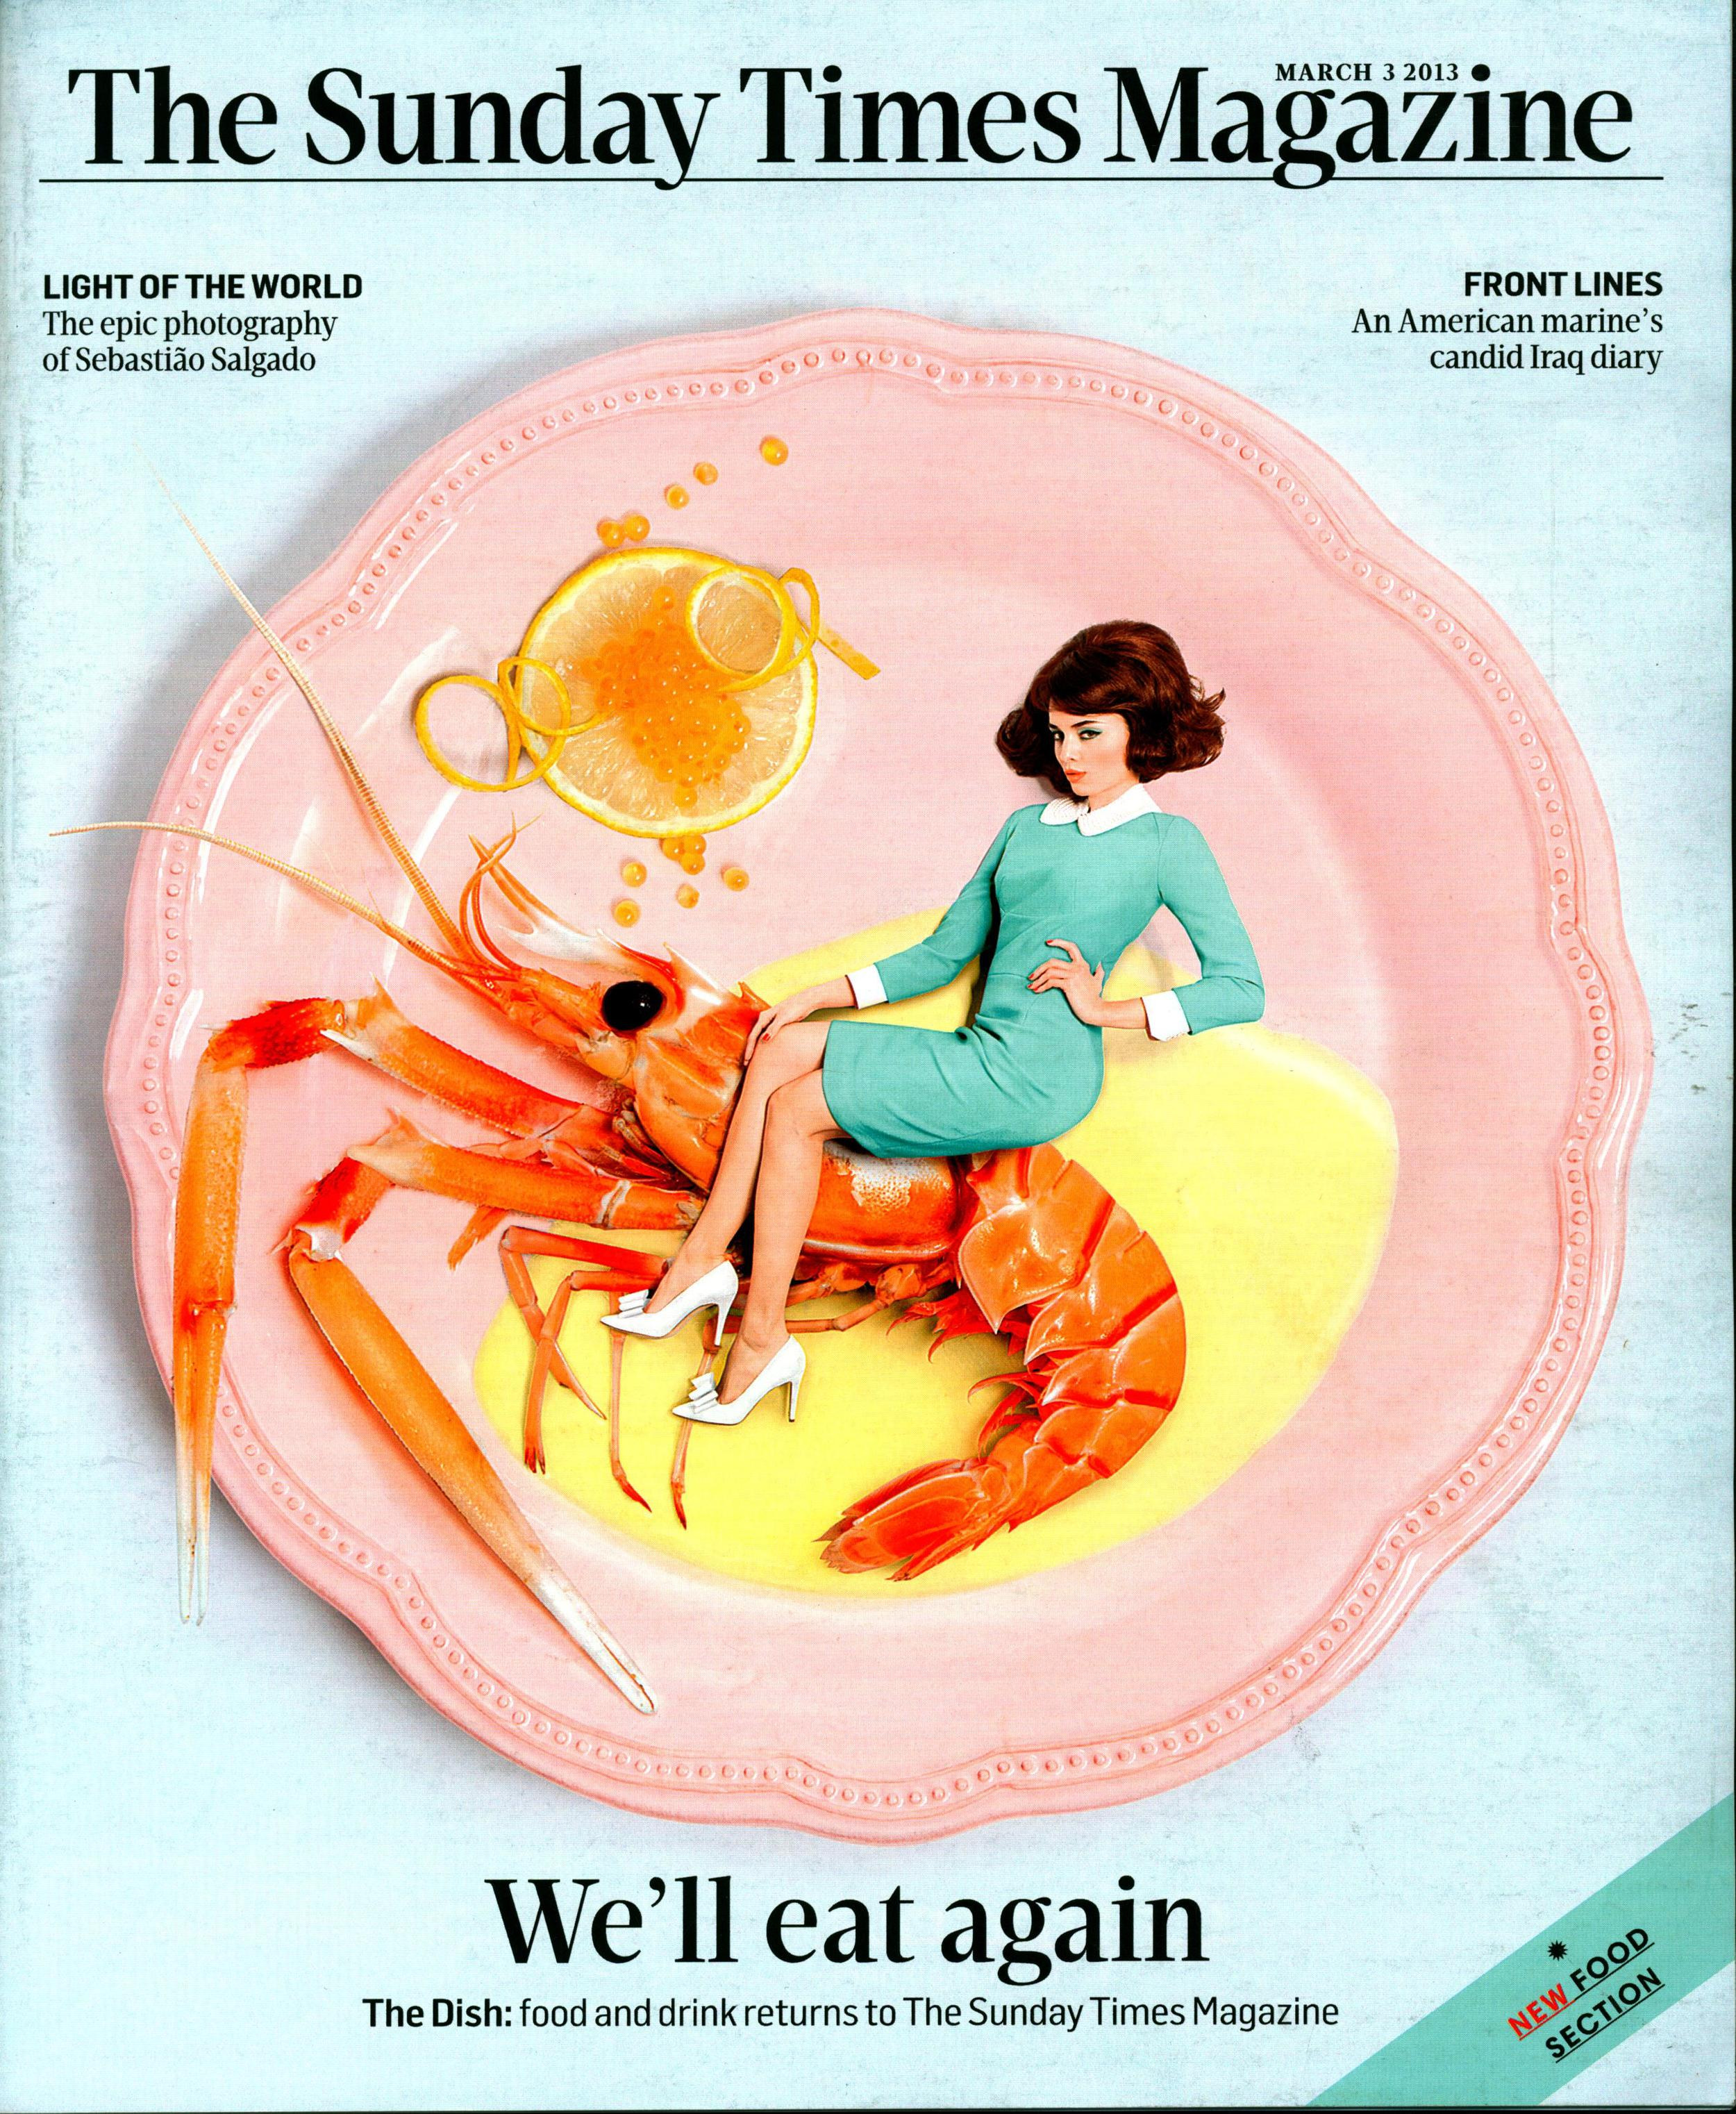 03032013_THE SUNDAY TIMES MAGAZINE_BAGHDAD0000.jpg